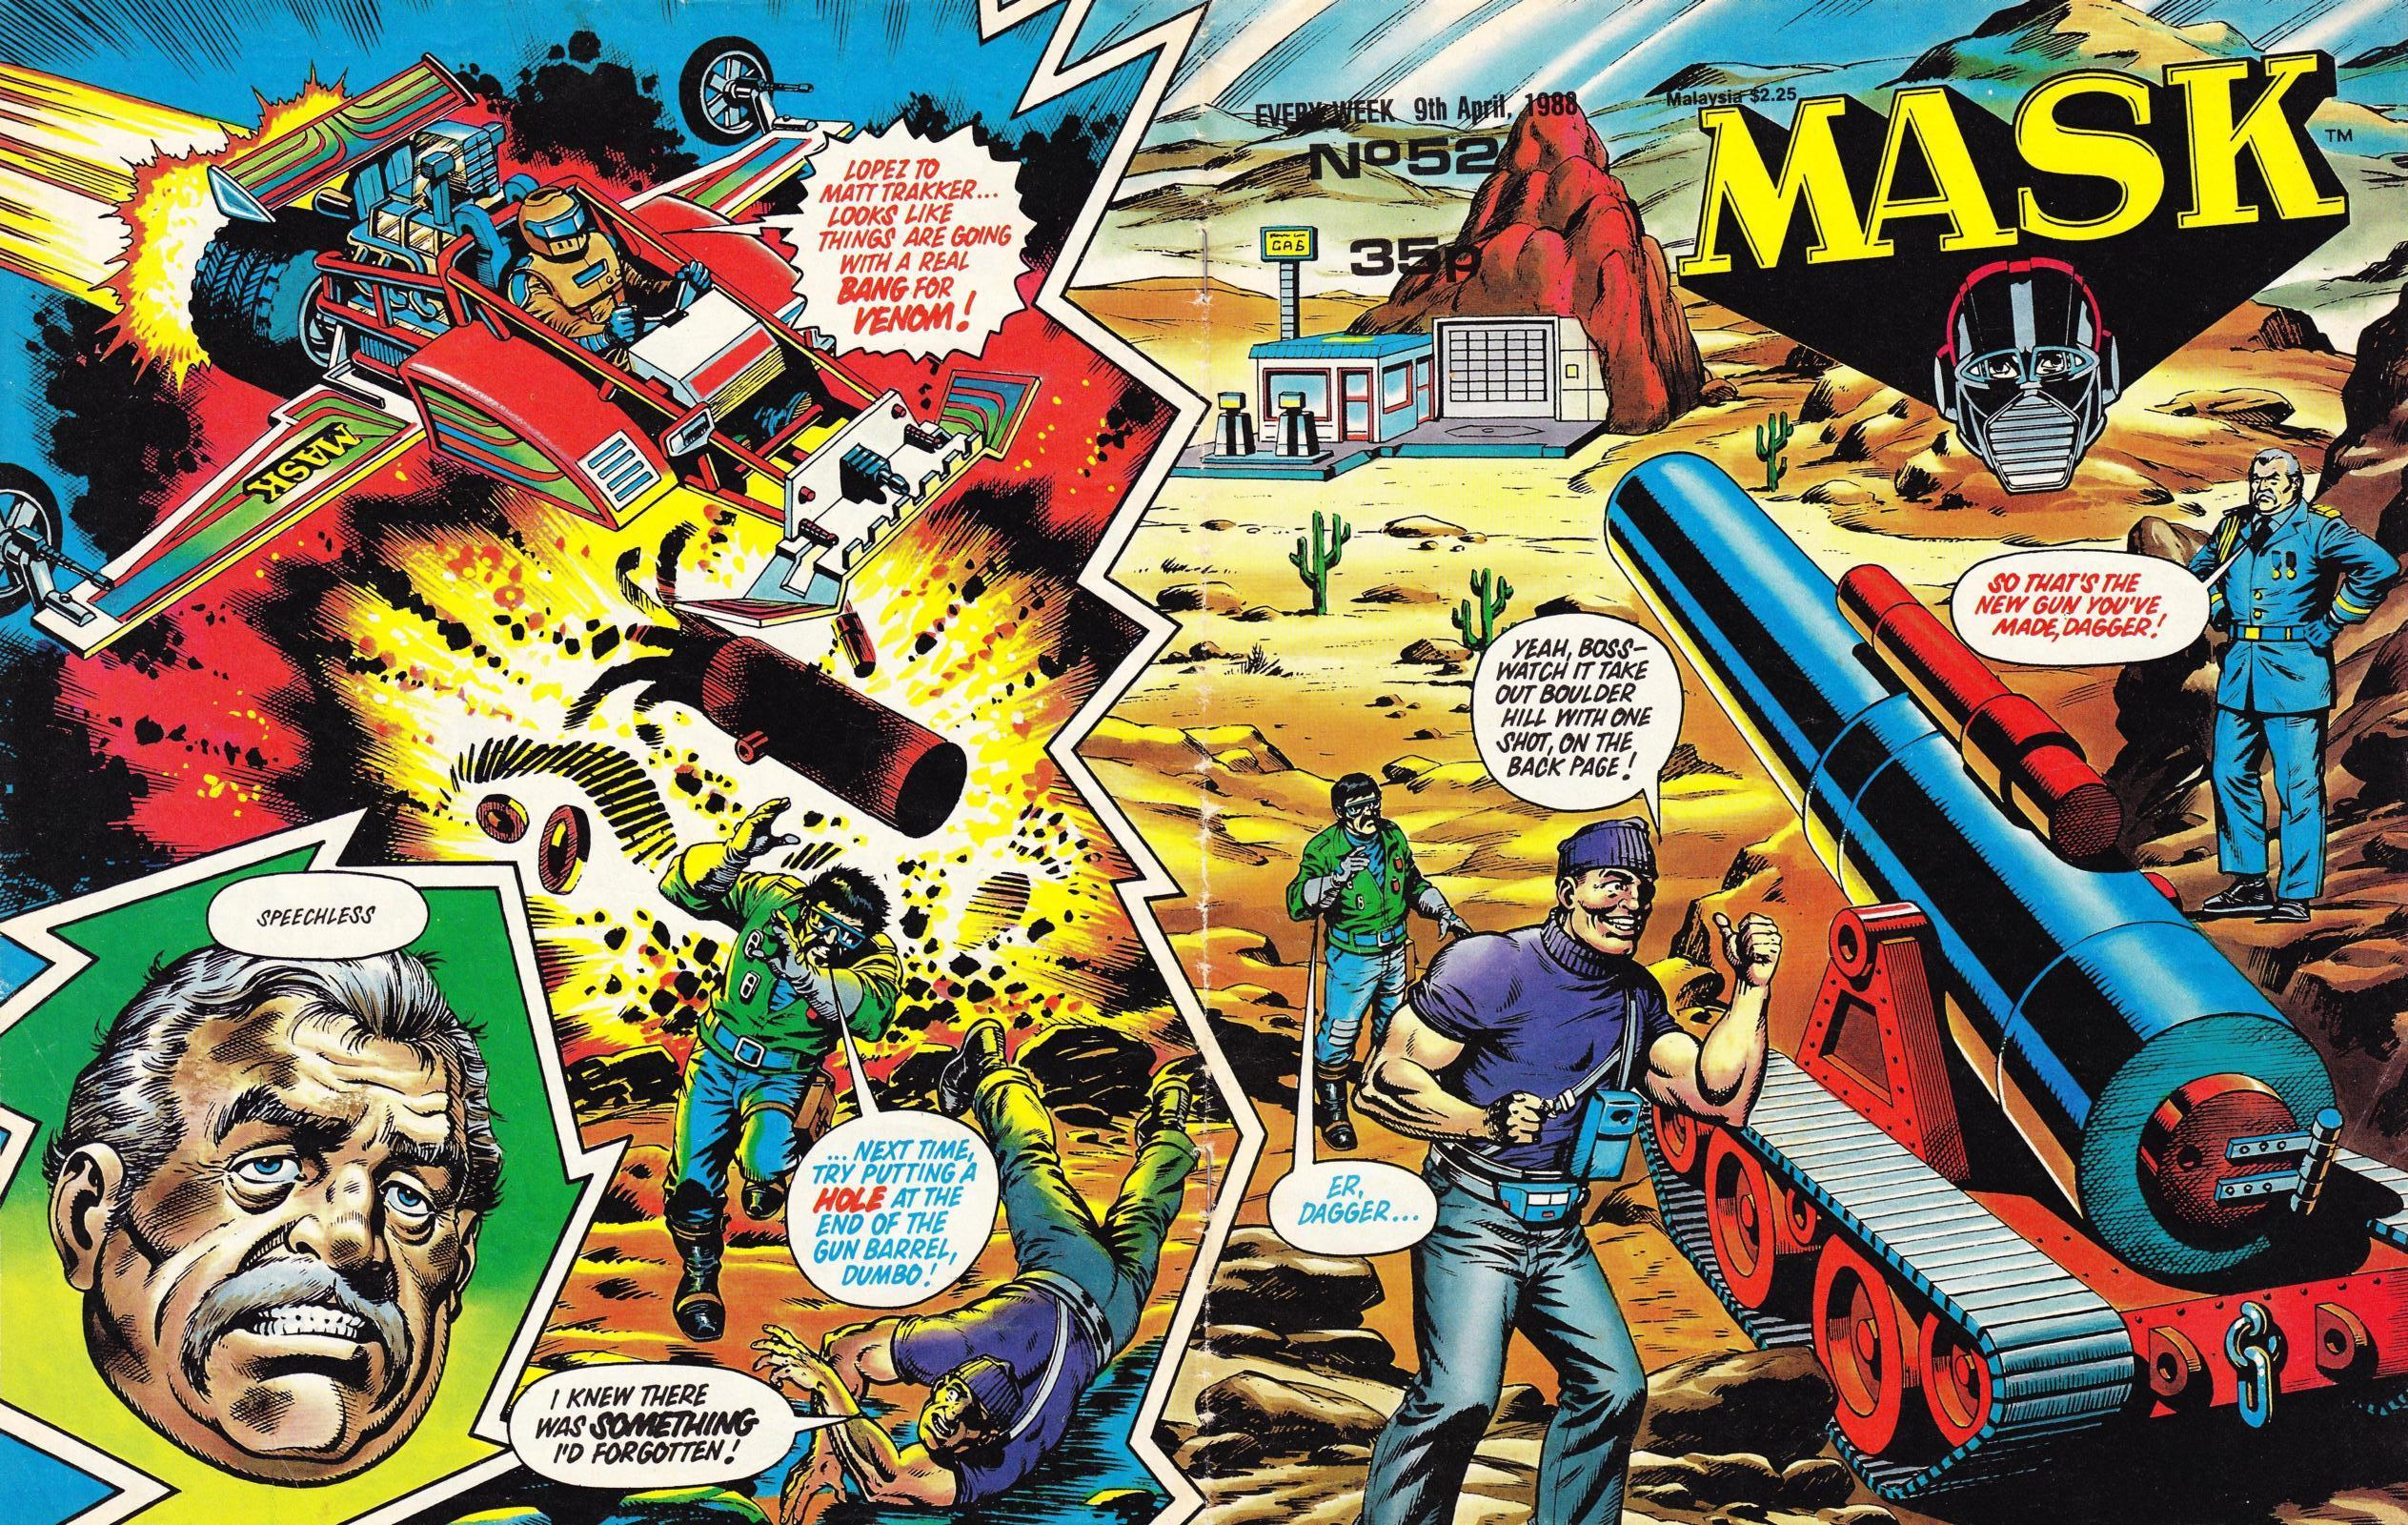 The wraparound cover for MASK Issue 52. These wraparounds were something of a staple for the weekly comic